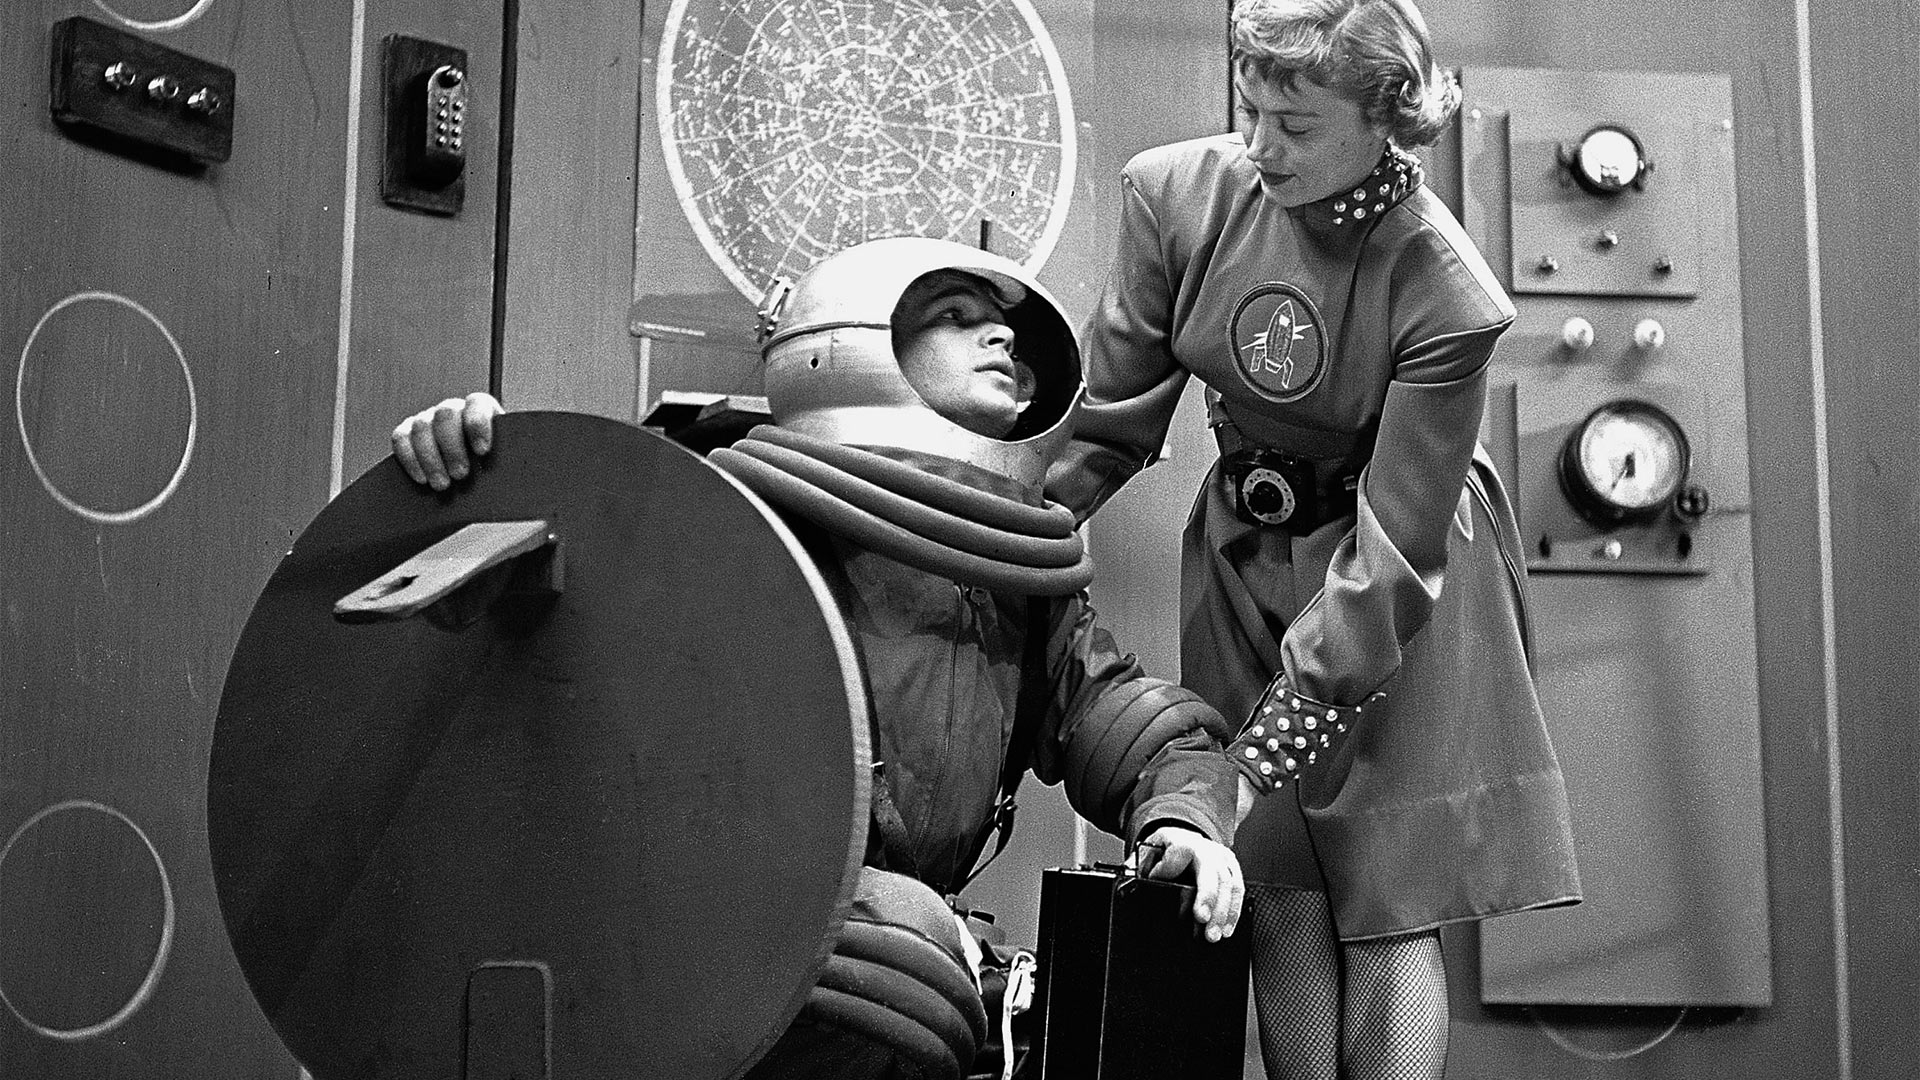 Tom Corbett, Space Cadet (1950–1955)